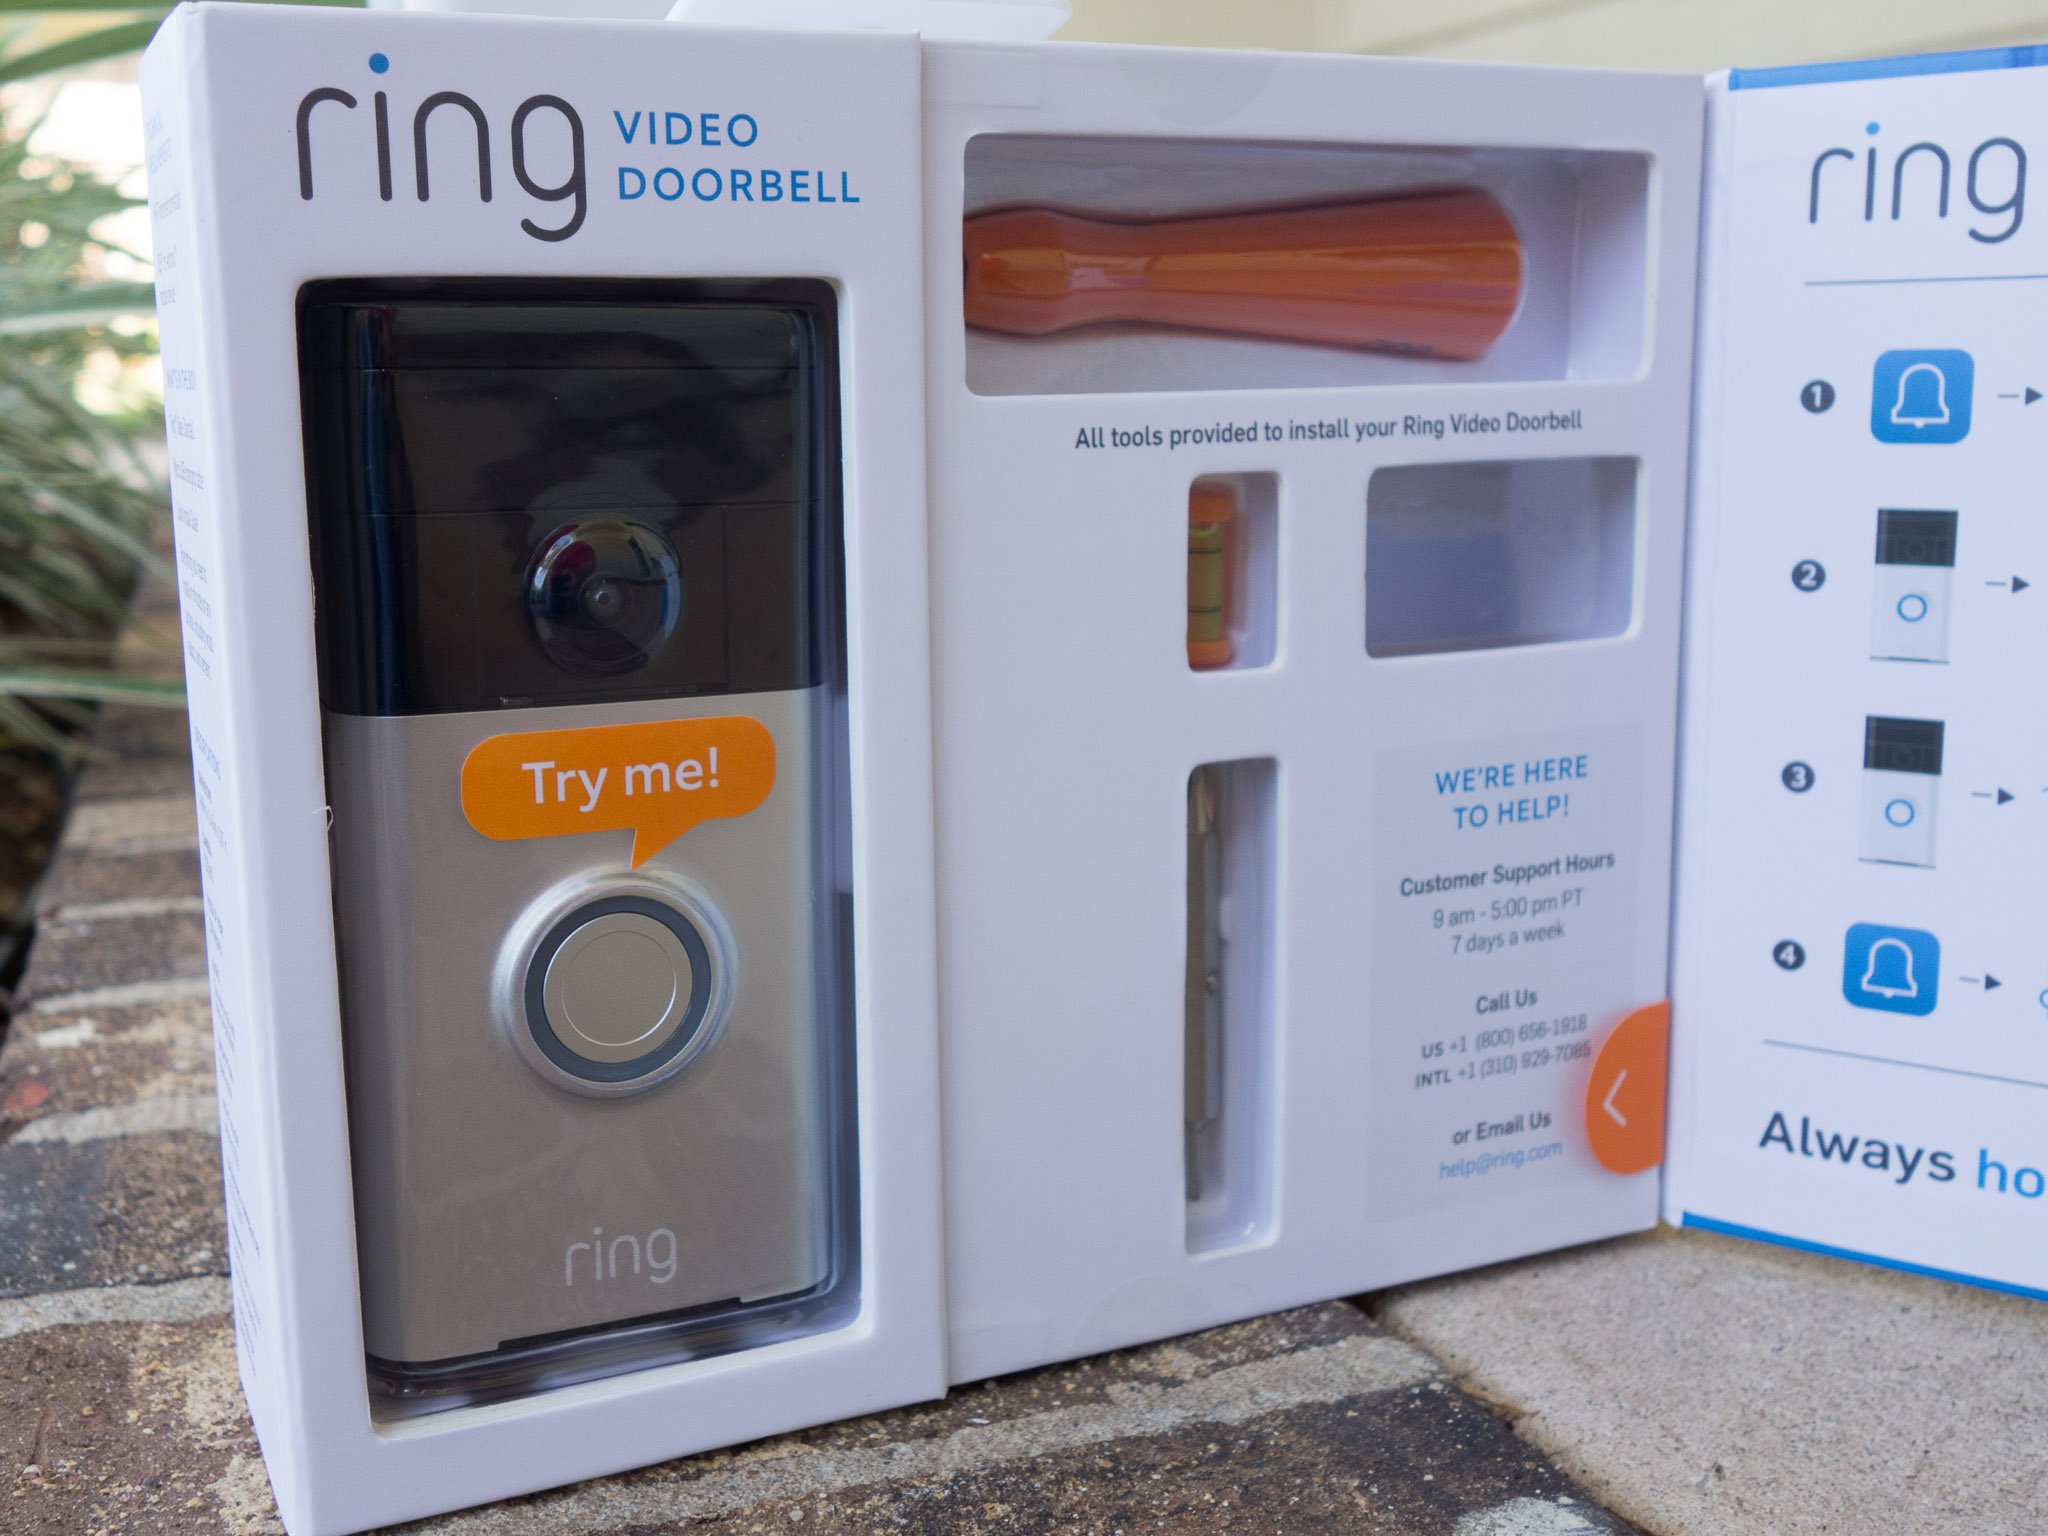 ring doorbell wiring diagram class for hotel reservation system review part 1 setting up a 199 connected